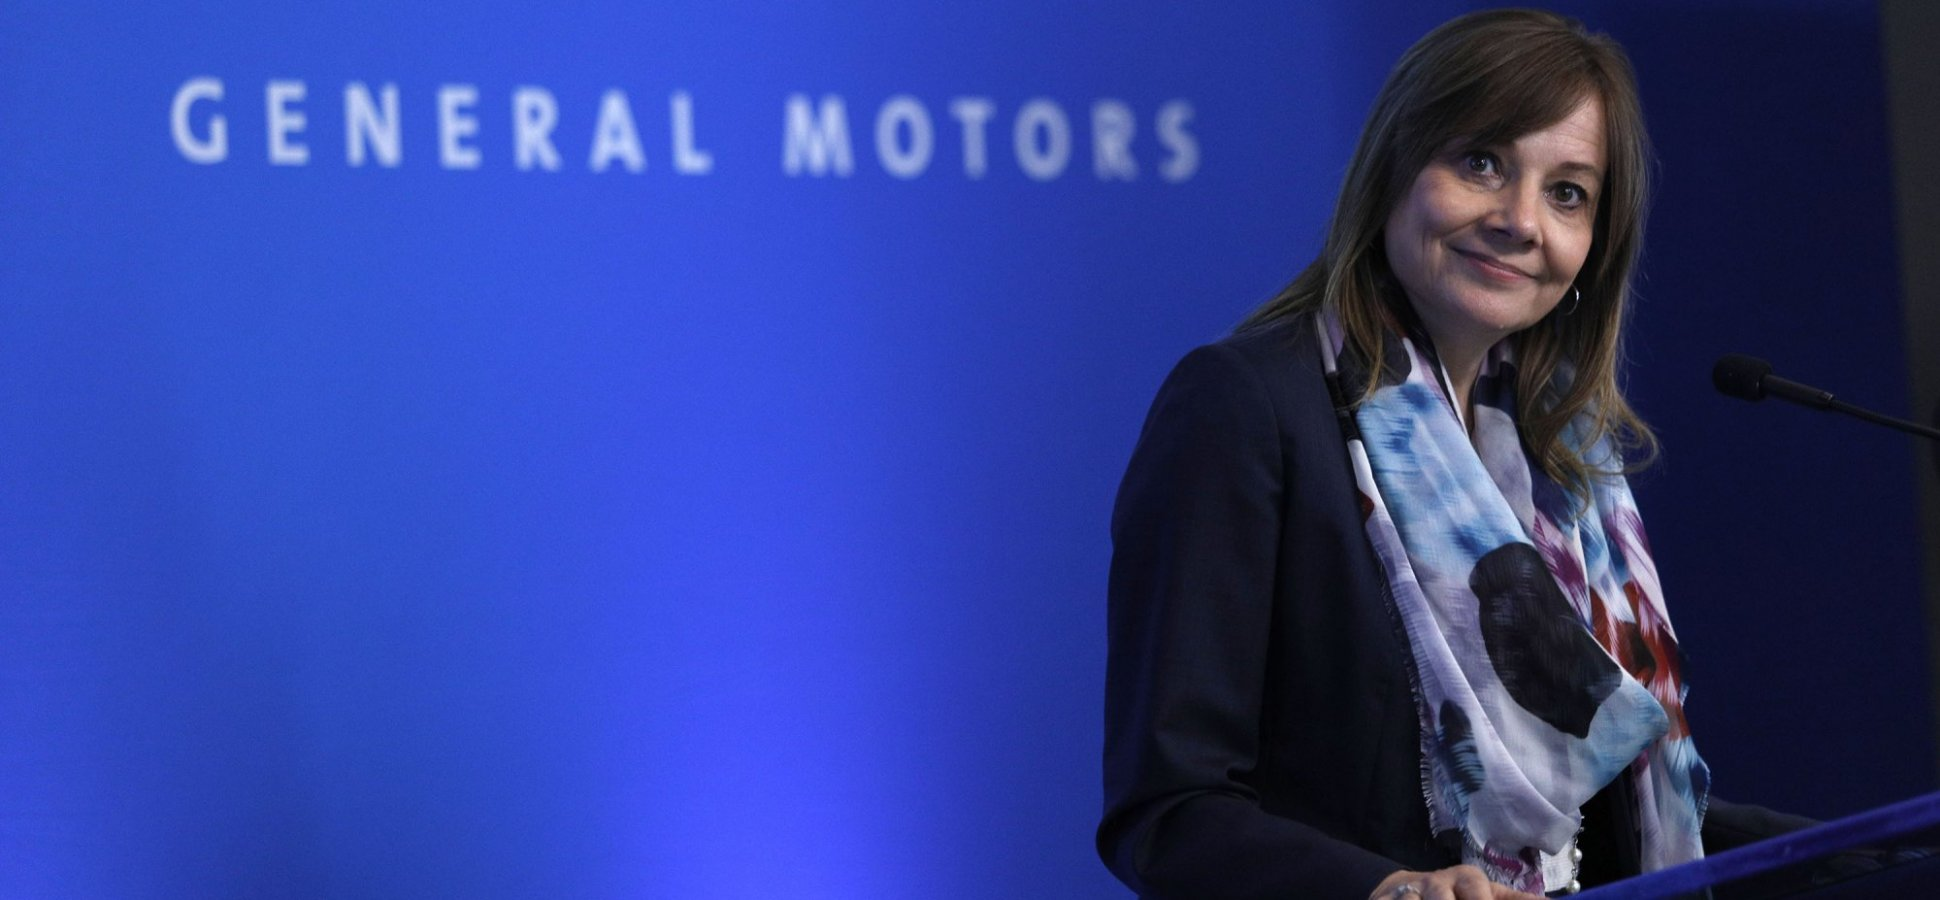 The CEO of General Motors Says She Asks the Same 3 Questions In Every Job Interview. Here's Why the Right Answers Are So Surprising